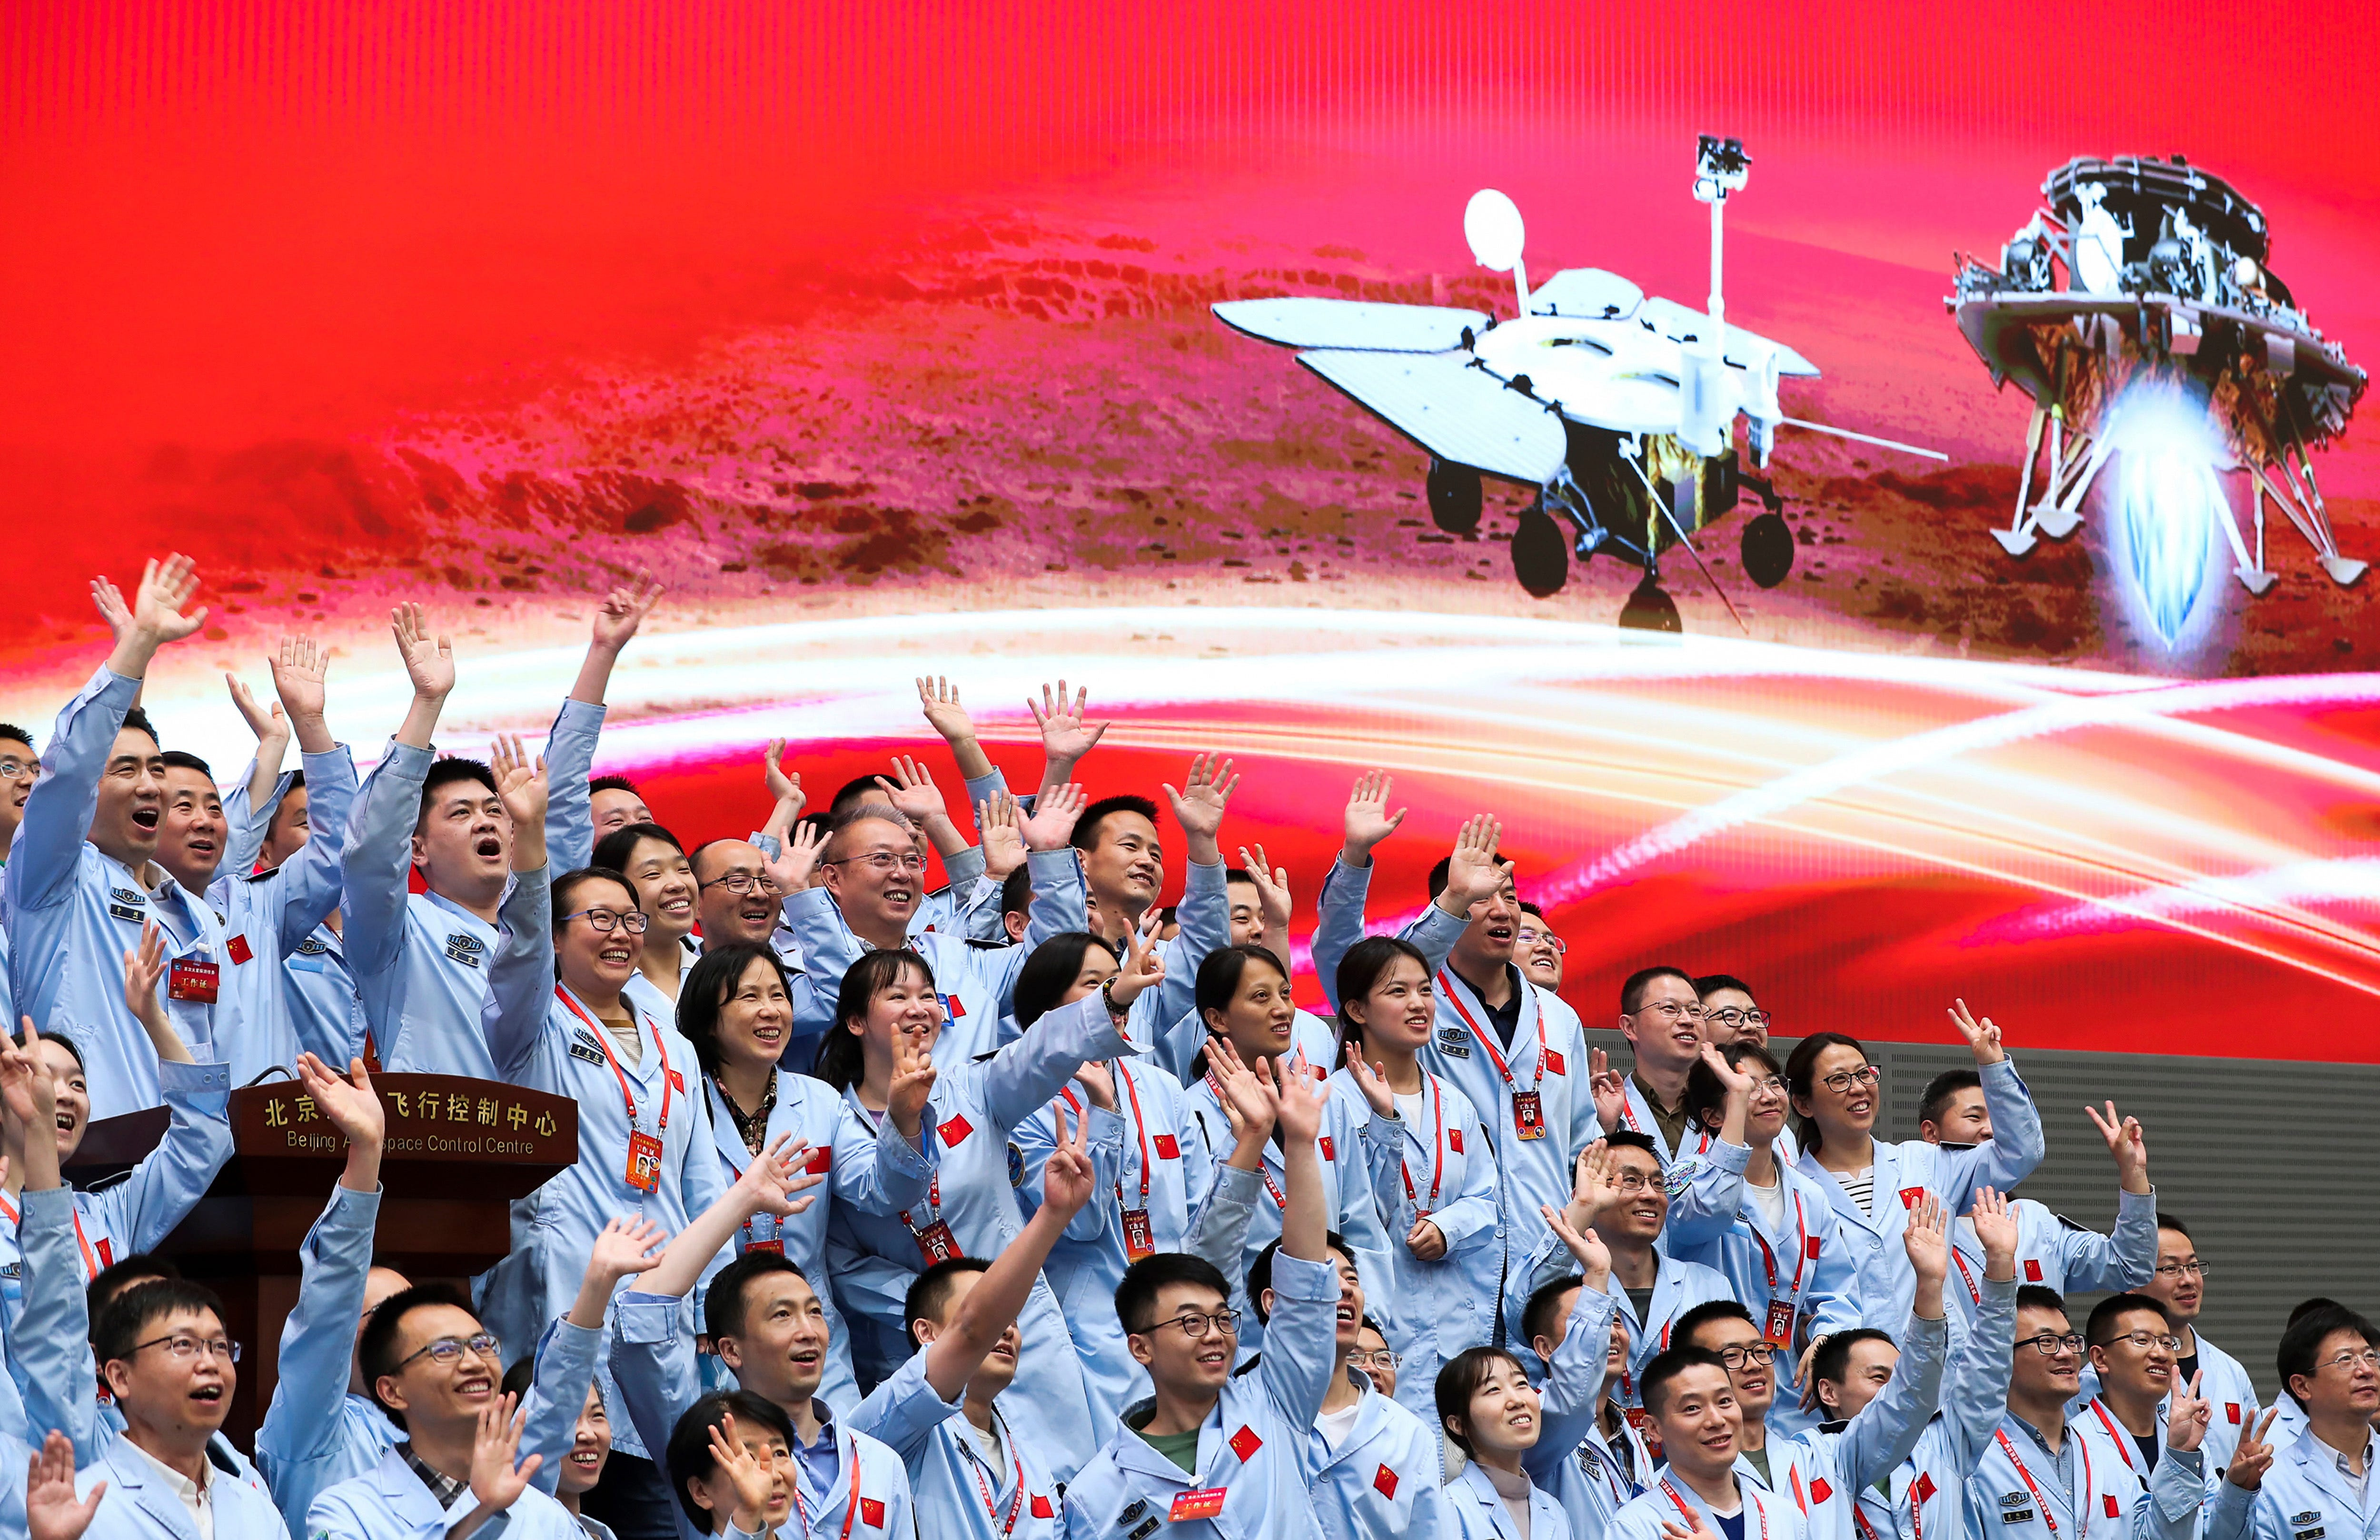 China lands on Mars in latest advance for its space program 2